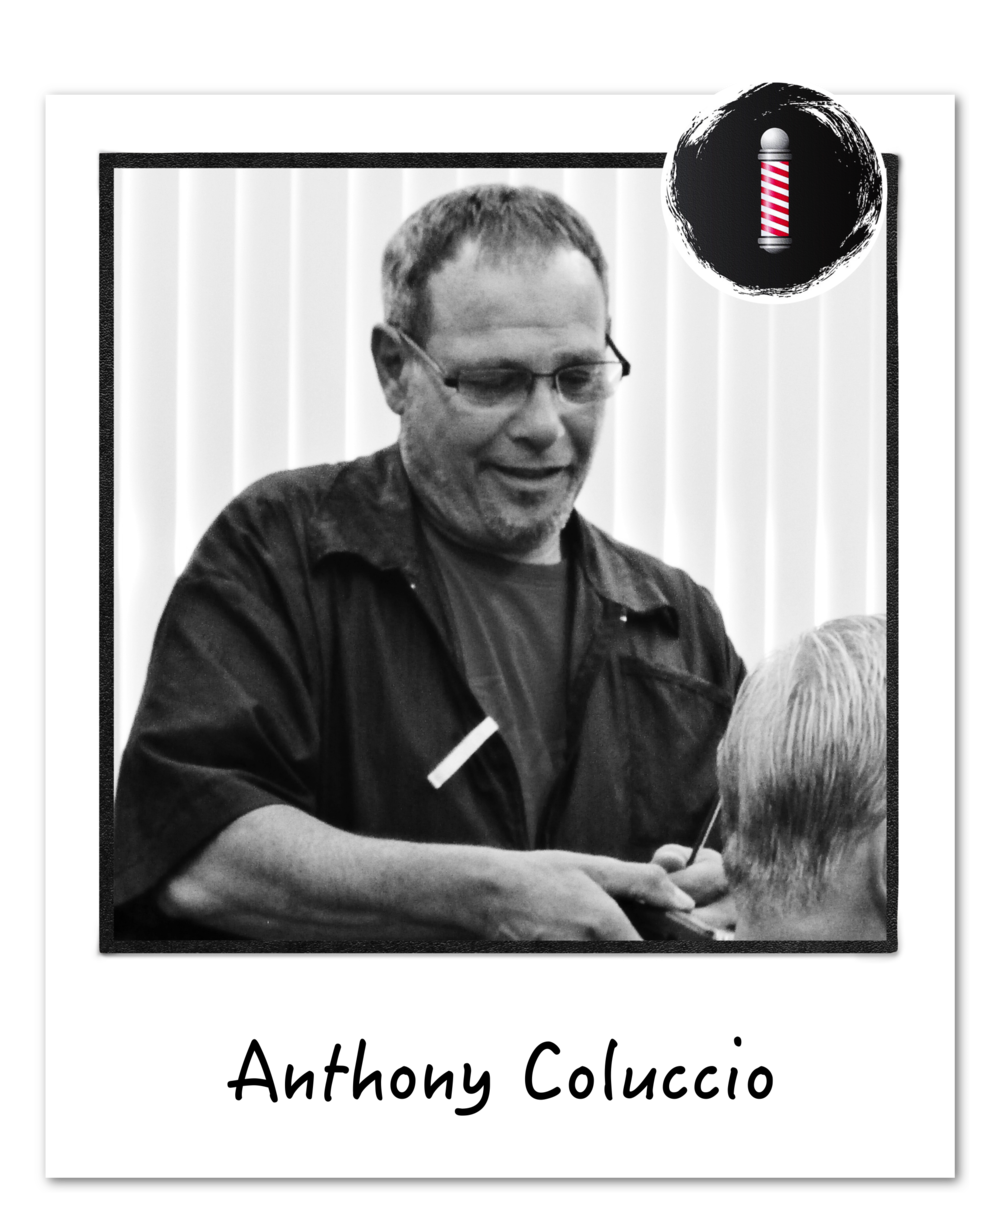 anthonycoluccio.png